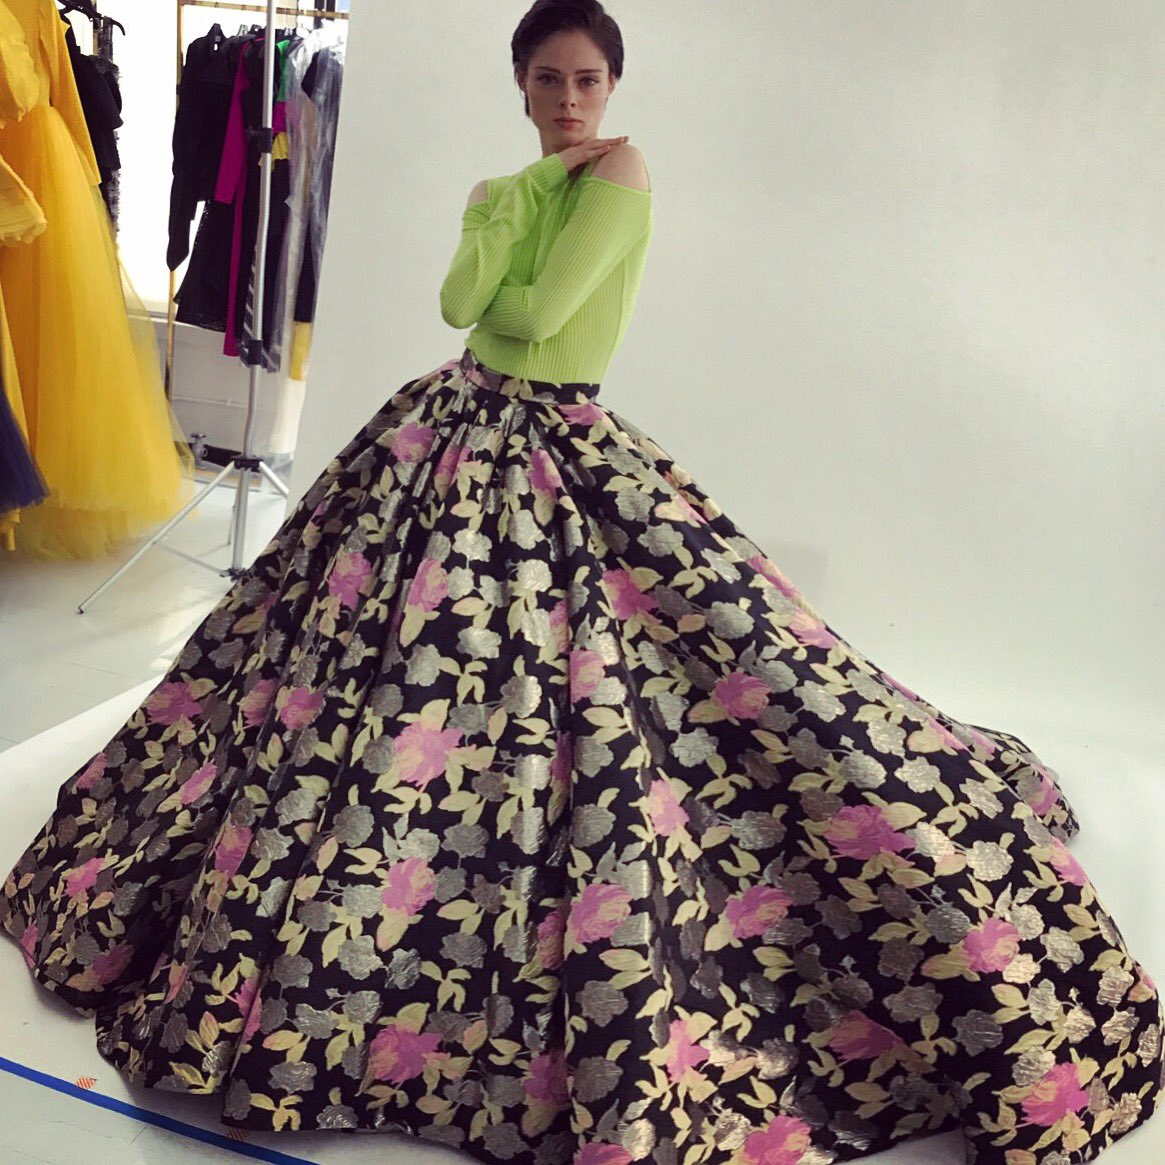 Last years Spring collection fittings with the amazing @cocorocha. I can't believe #fashionwweek is 3 weeks away! 🌸🌺🌸🌺